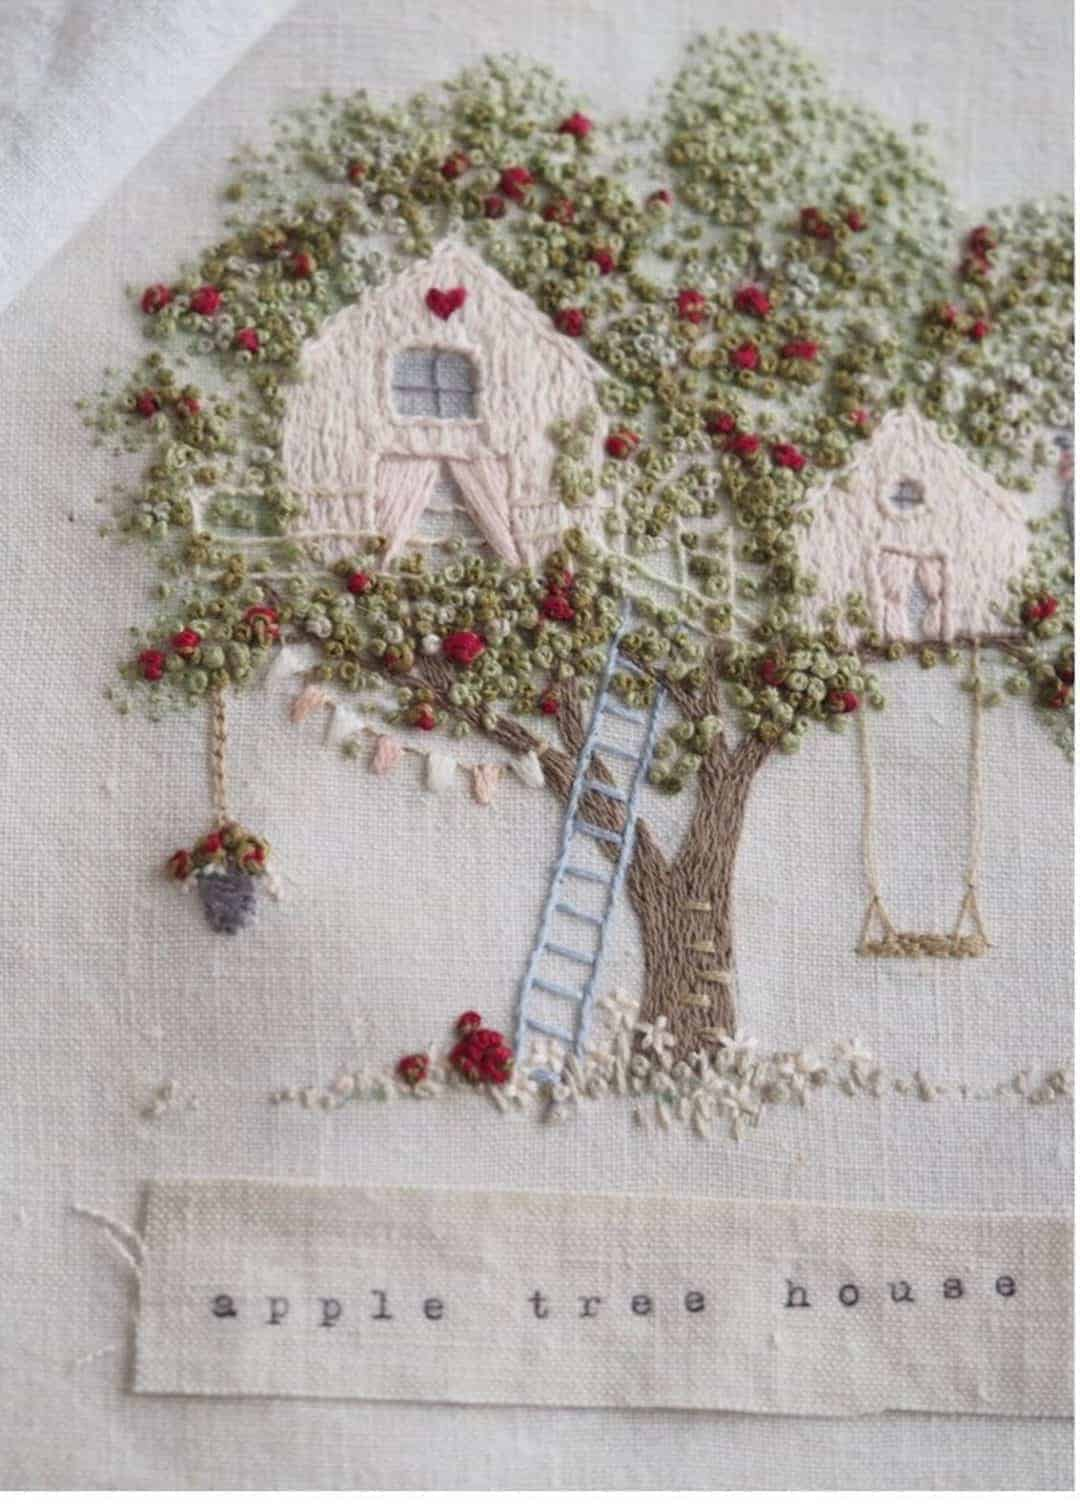 crewel embroidery kit apple tree house design on antique linen available to buy as a DIY kit from Etsy just one of the beautiful ideas I've shared with links to everything you need to enjoy crewel embroidery #crewel #embroidery #diy #kits #apple #treehouse